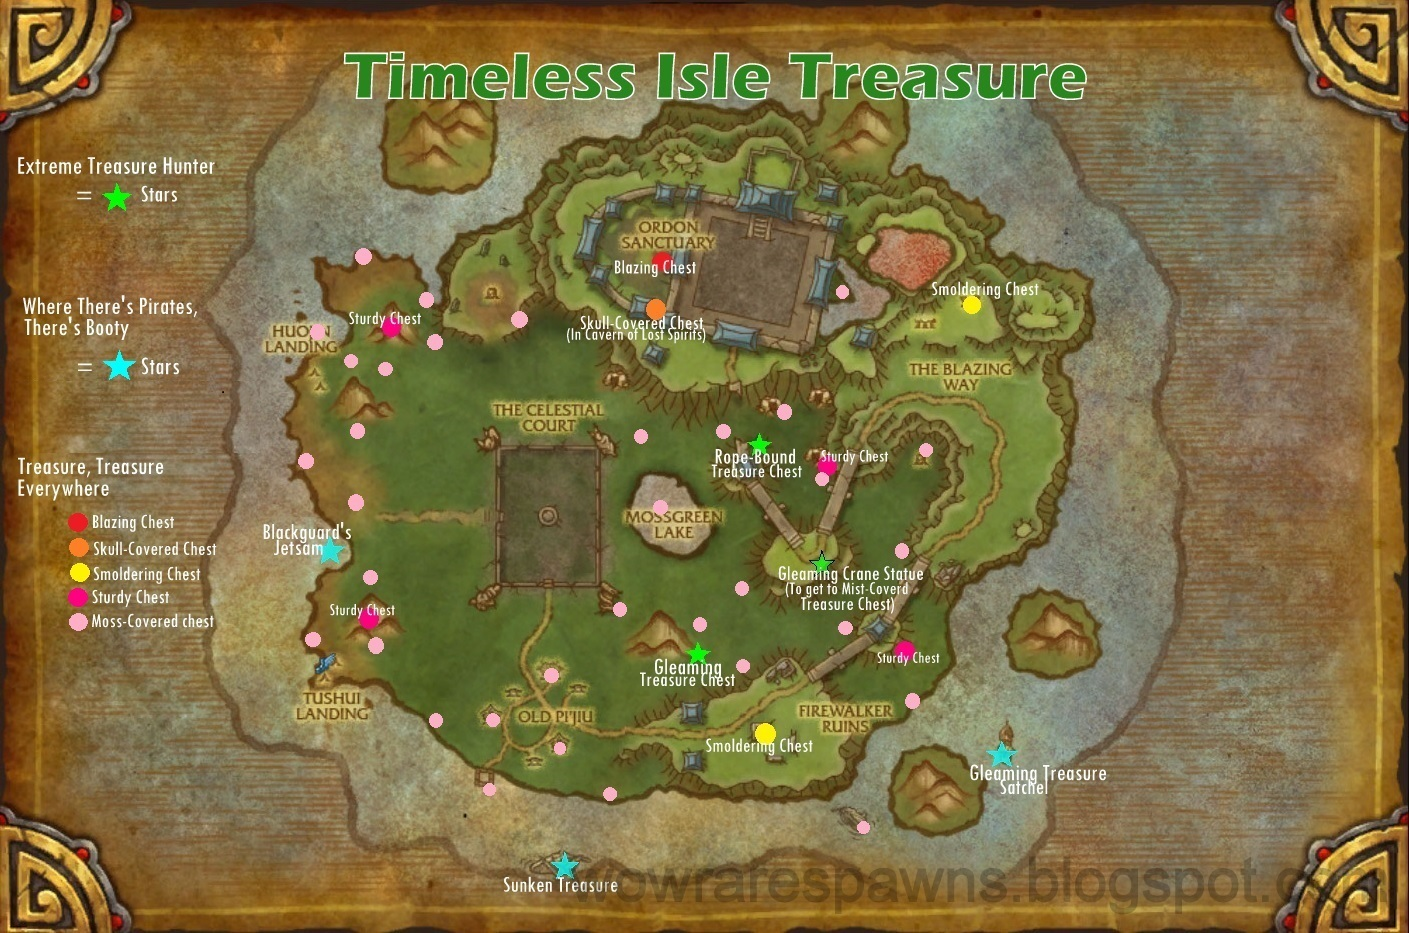 WoW Rare Spawns Timeless Isle Treasure